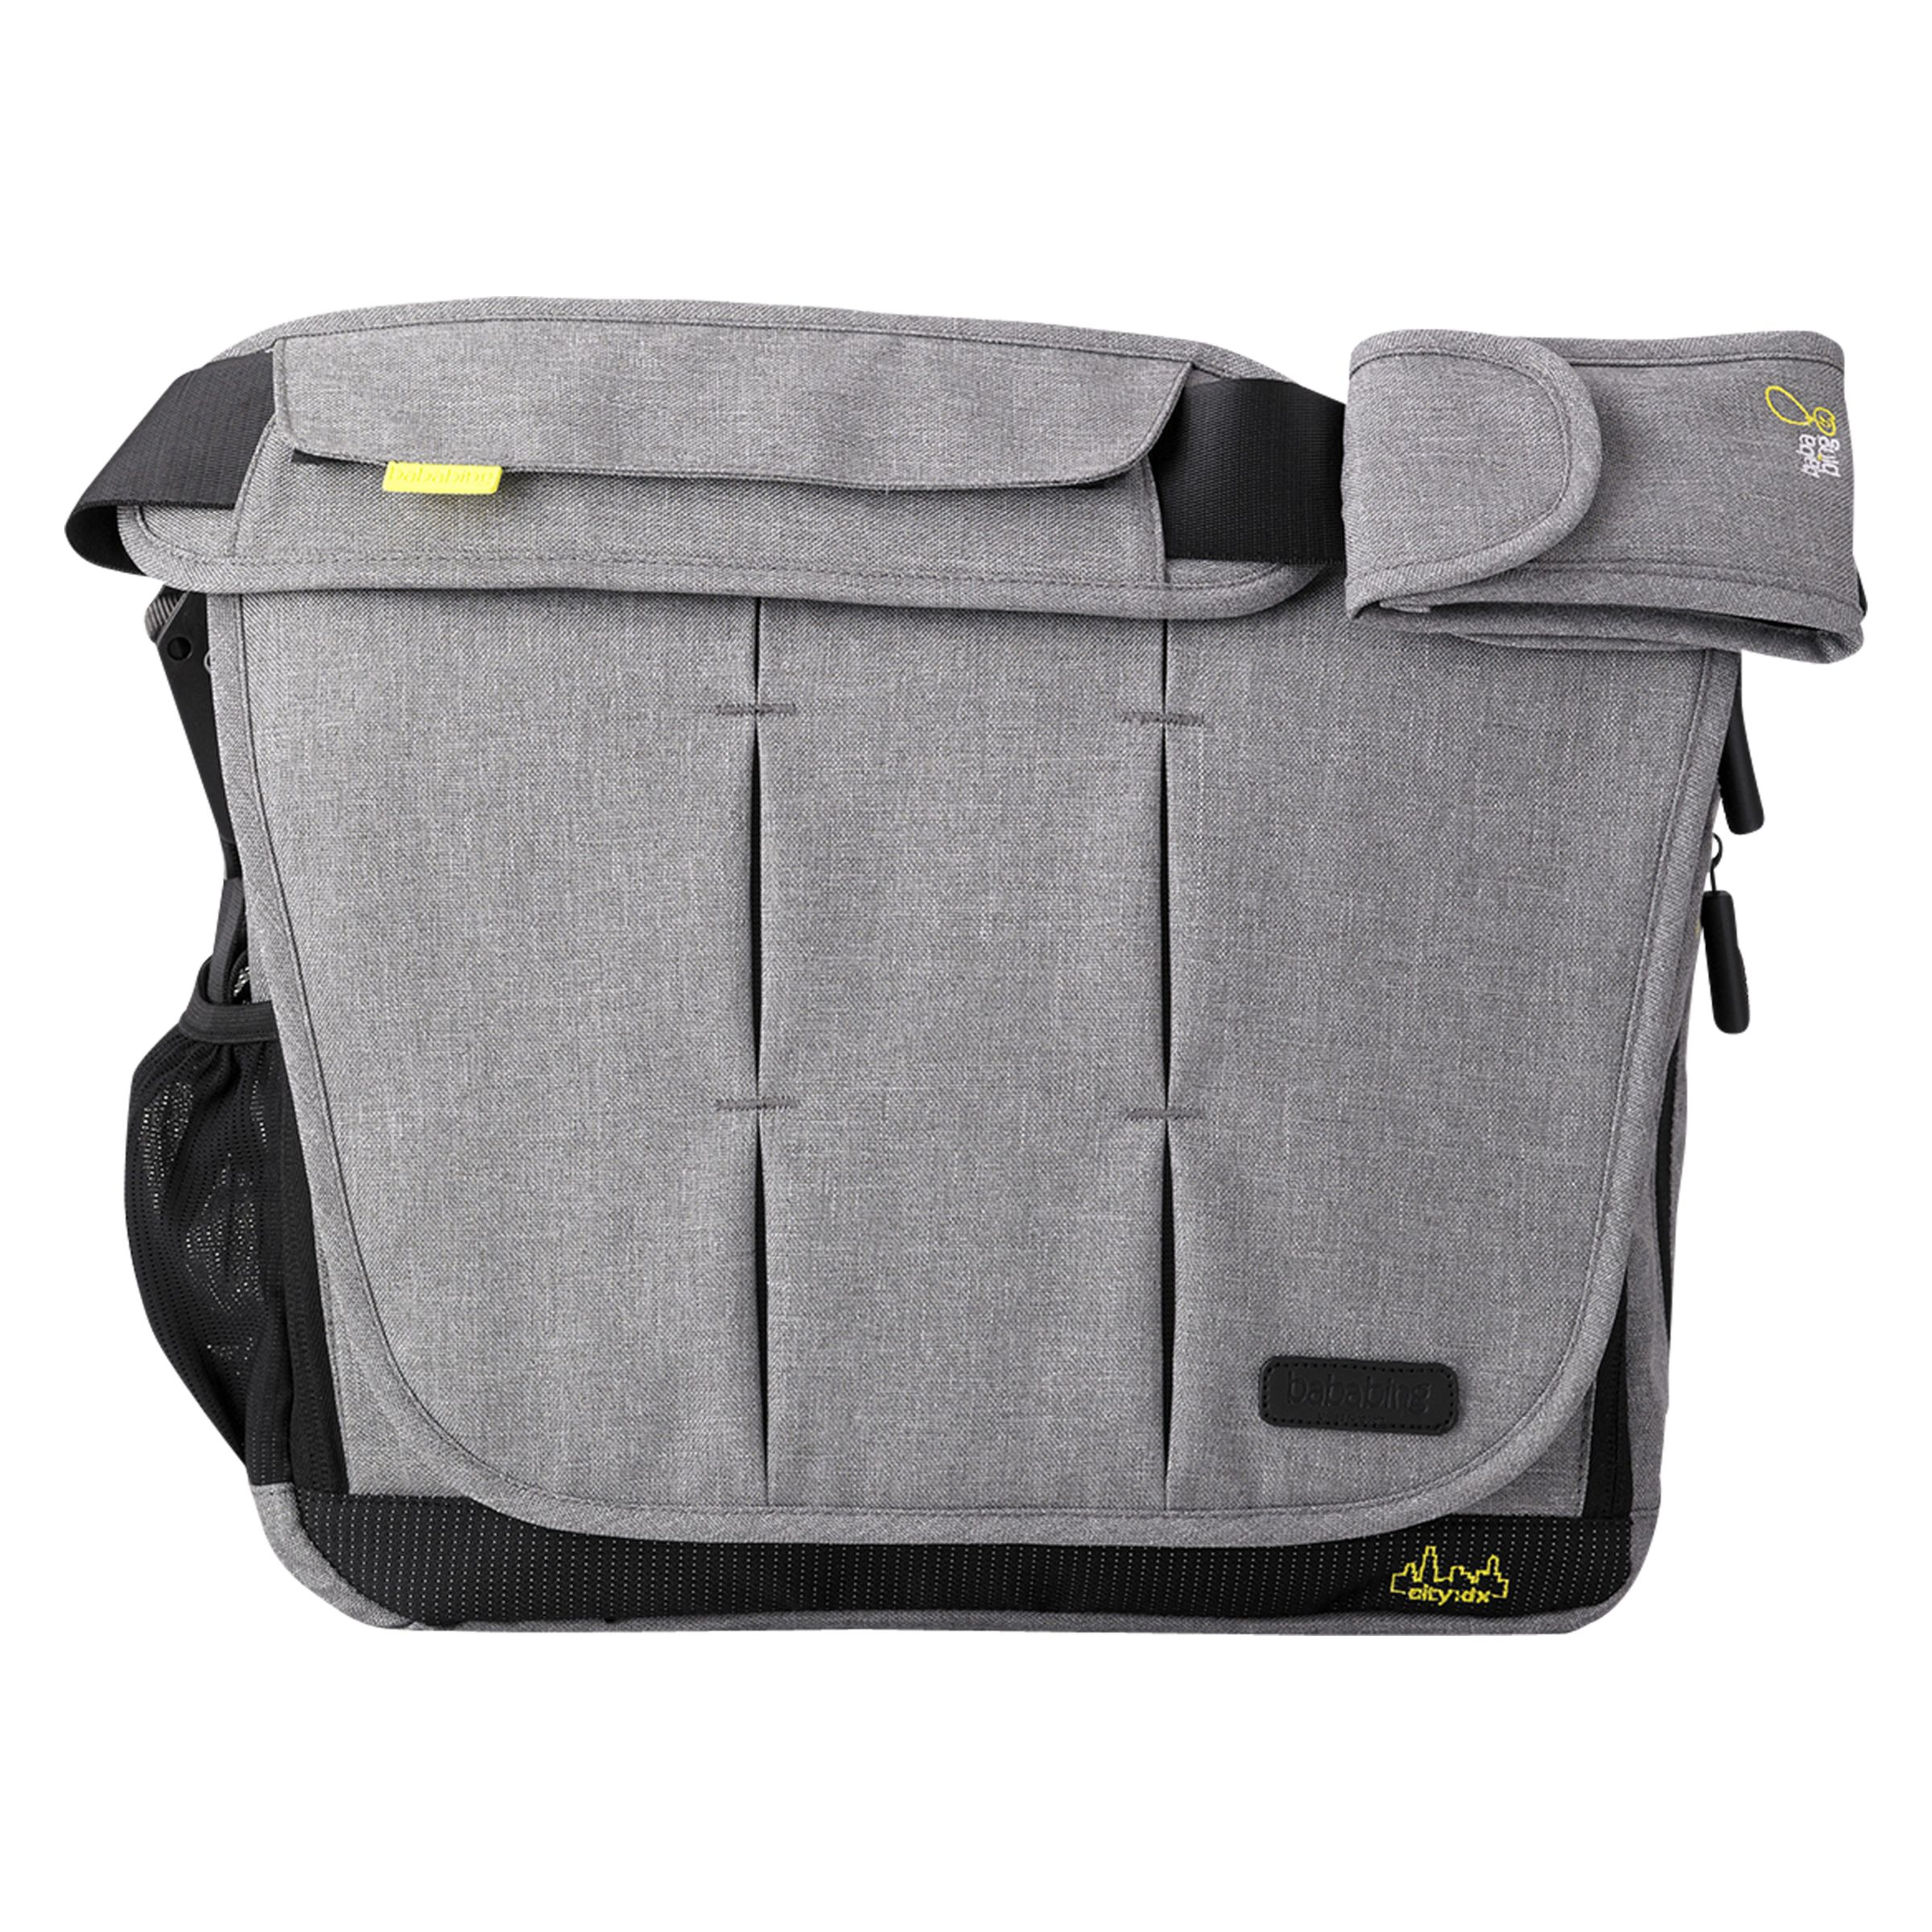 BabaBing Bababing DayTripper City Deluxe 2016 Changing Bag, Grey